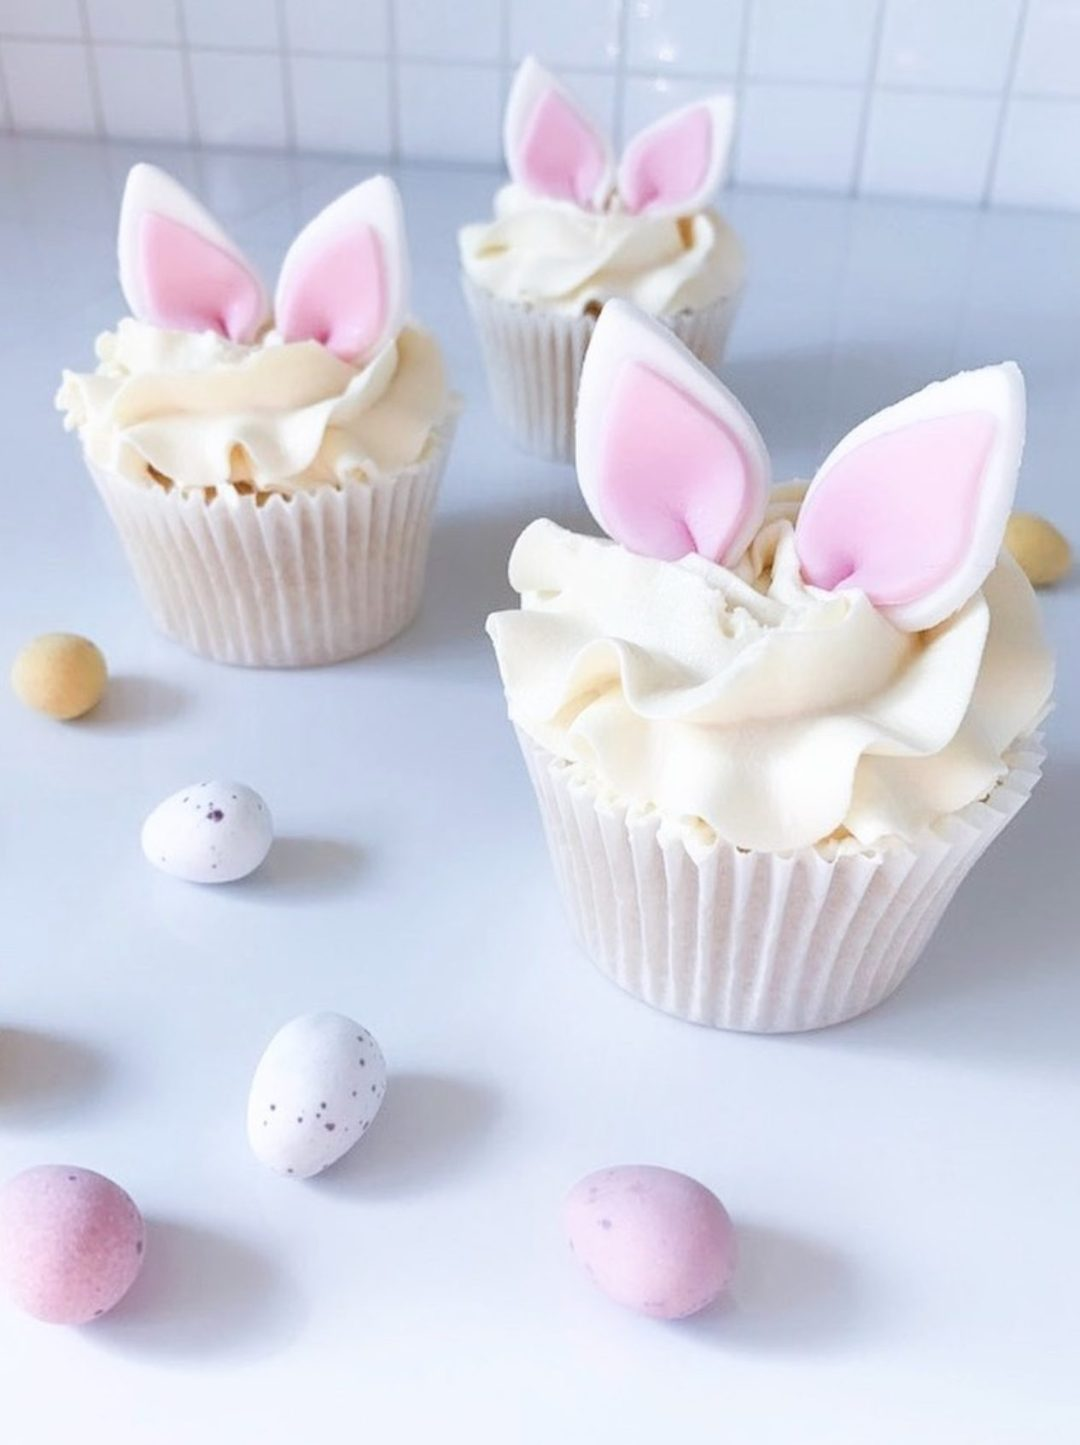 Bunny Ears Cupcakes With Frosting